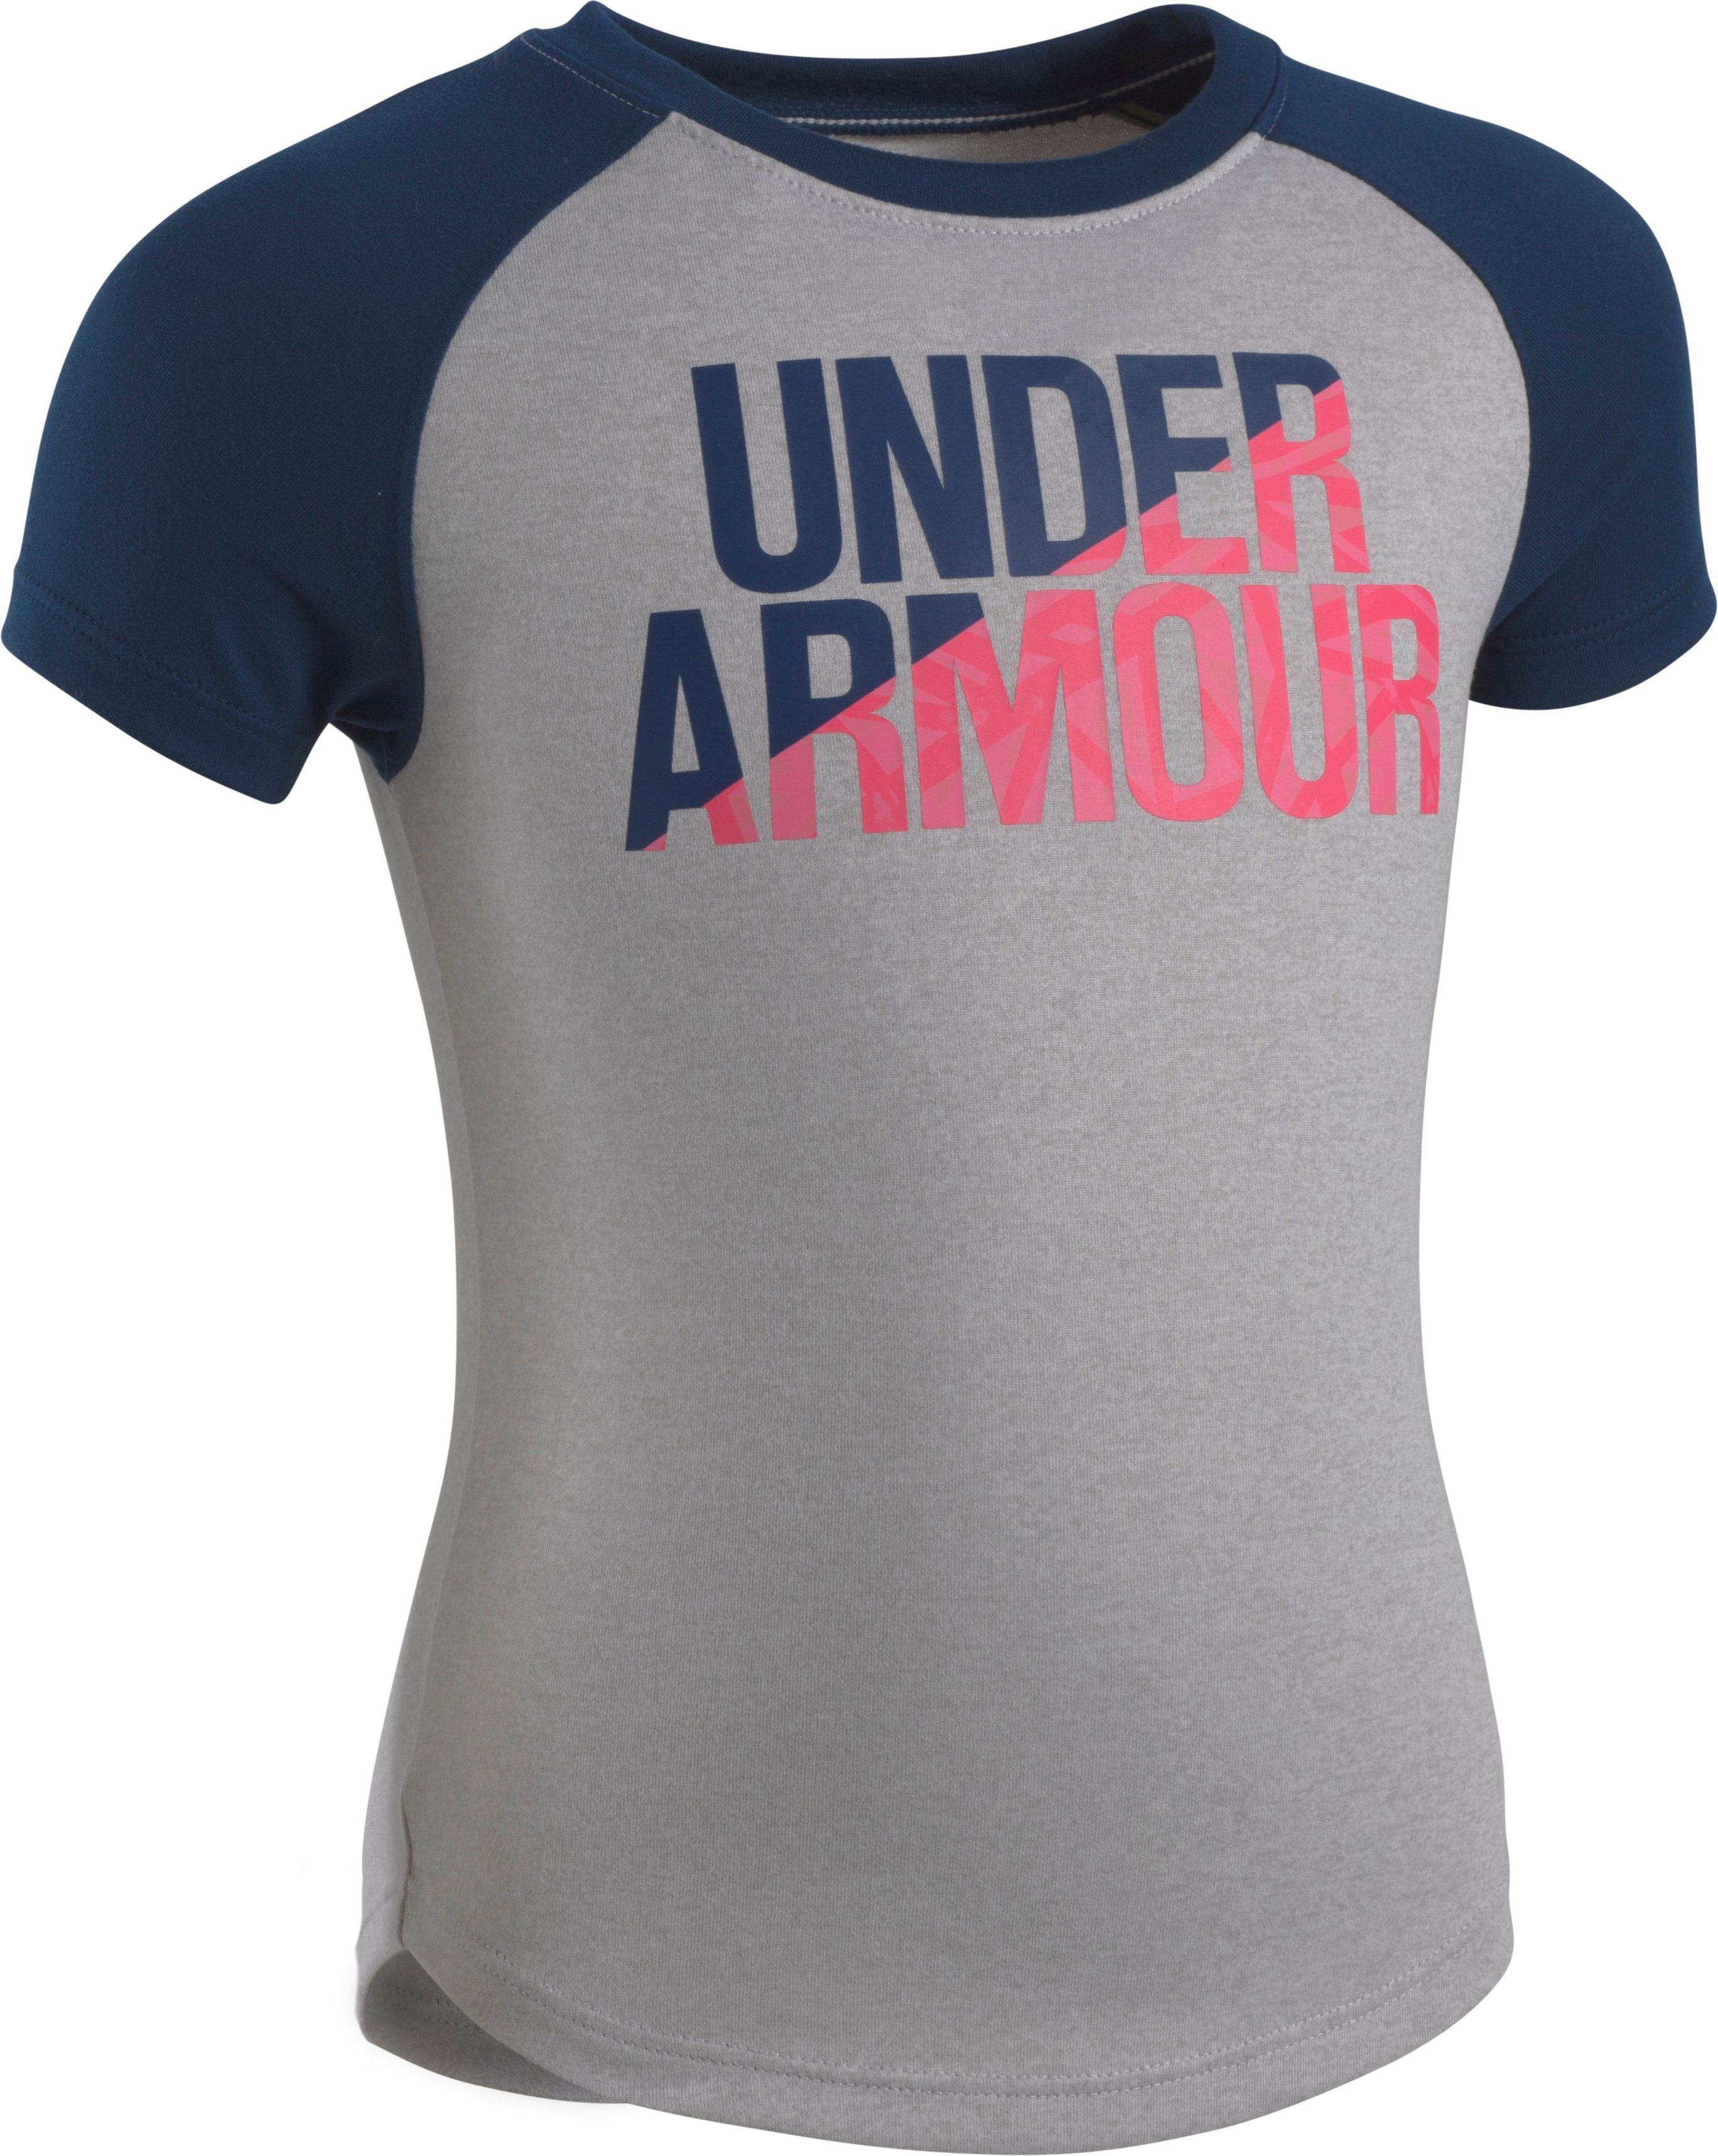 Girls' Pre-School Under Armour T-Shirt 1 Color $14.99